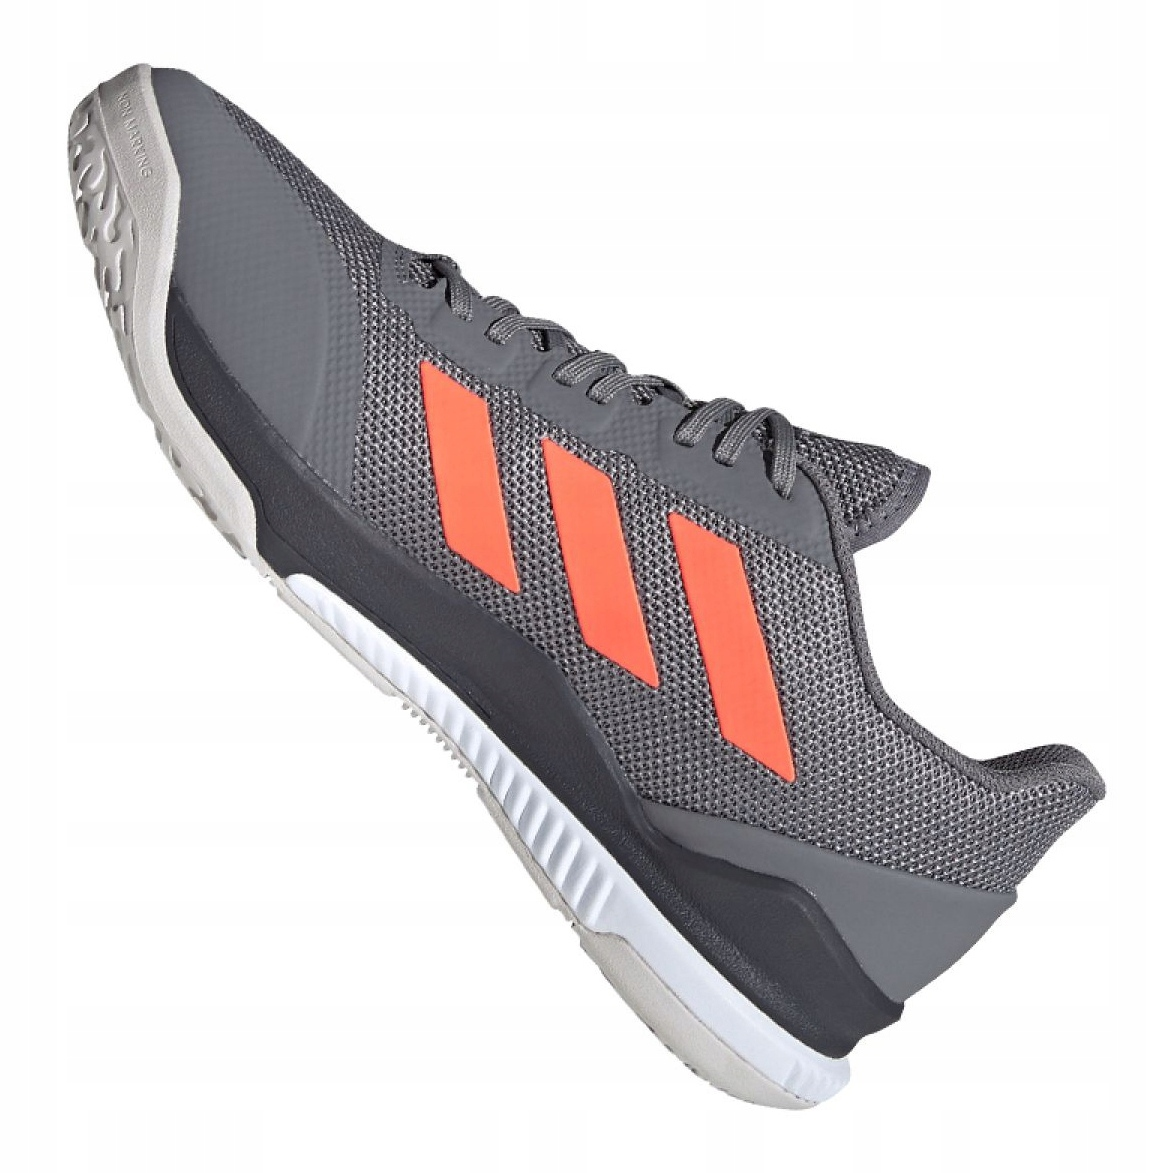 Buty adidas Stabil Bounce M EH0847 szare